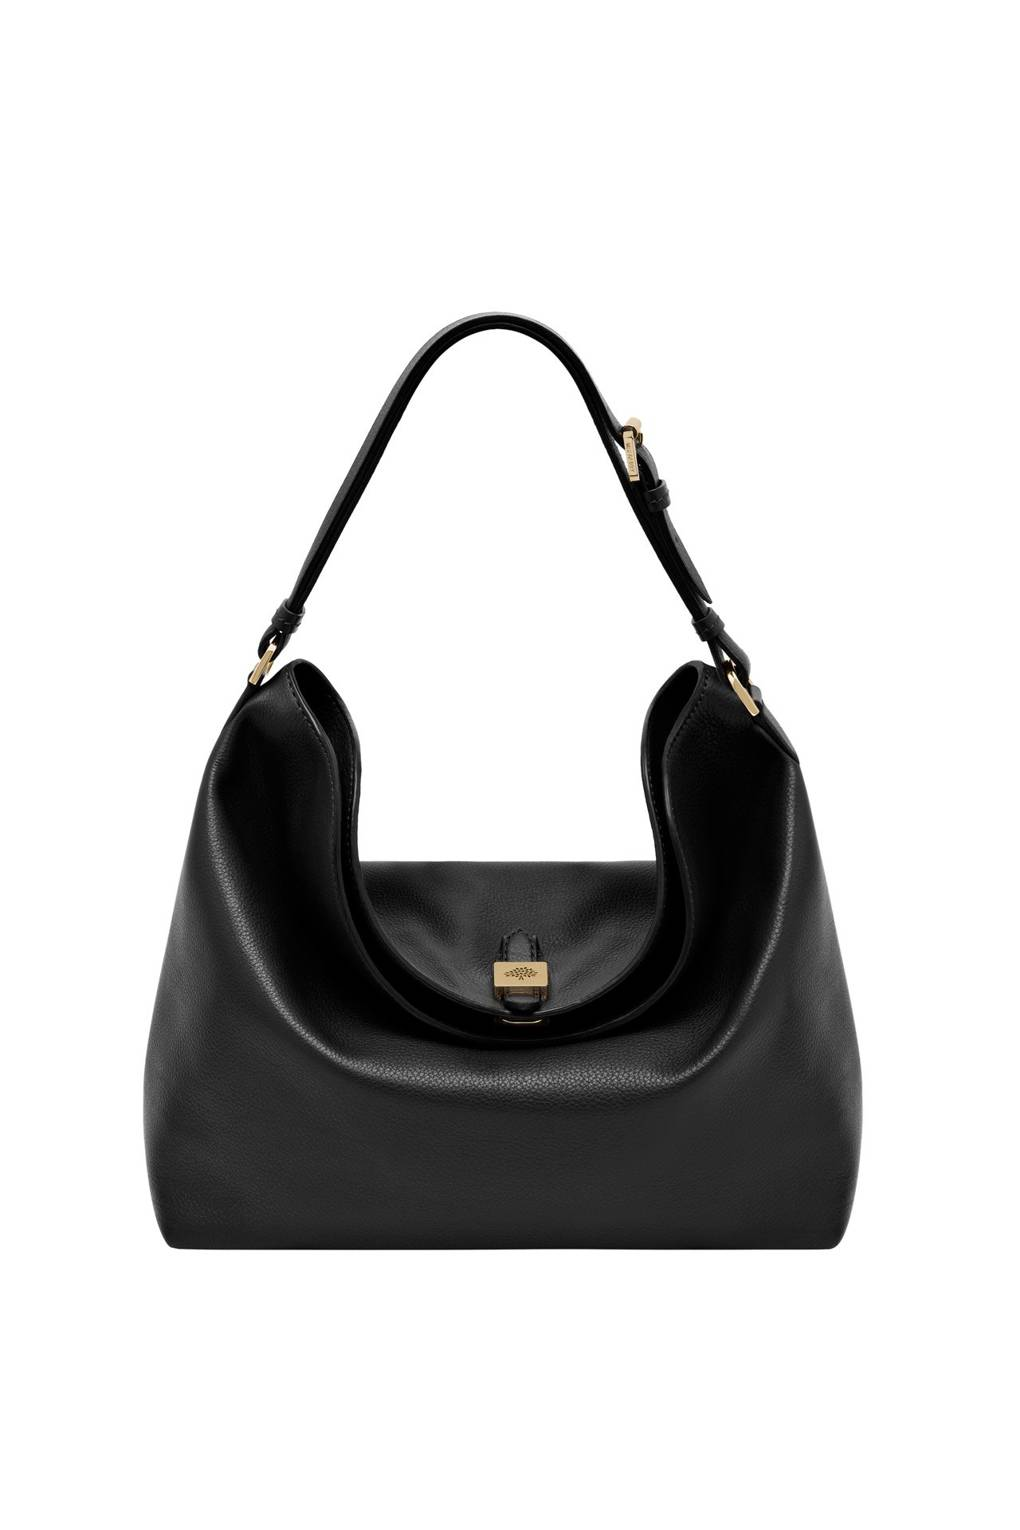 2df3bc95188a Mulberry Tessie Bag Exclusive Interview and Quotes